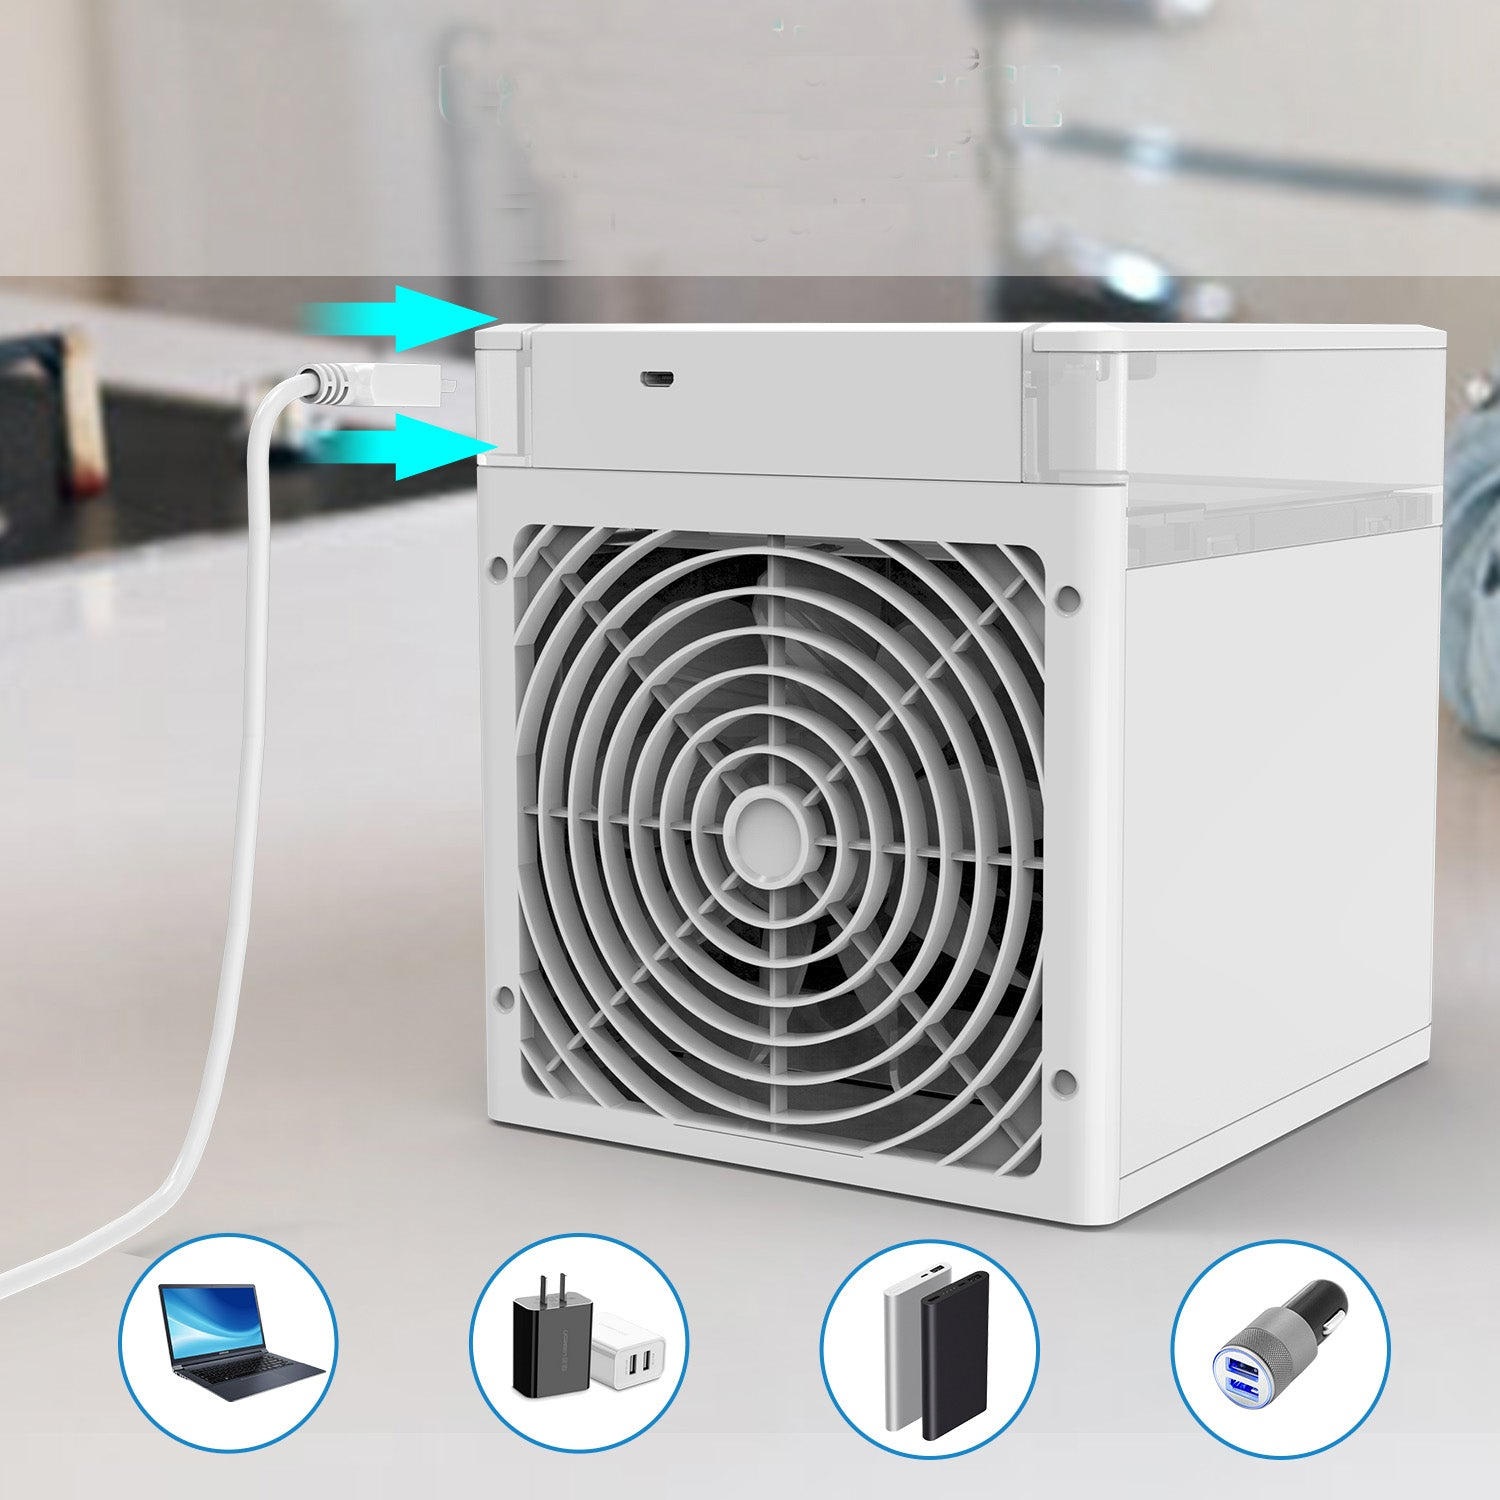 Powerful Cooling Portable Ac NexFan RPG Light Cooler Cooling Humidification Purify Room Aaromatherapy 4 In 1, USB Charging  Easy To Clean Built-in Filter Noise Reduction Portable Cooler